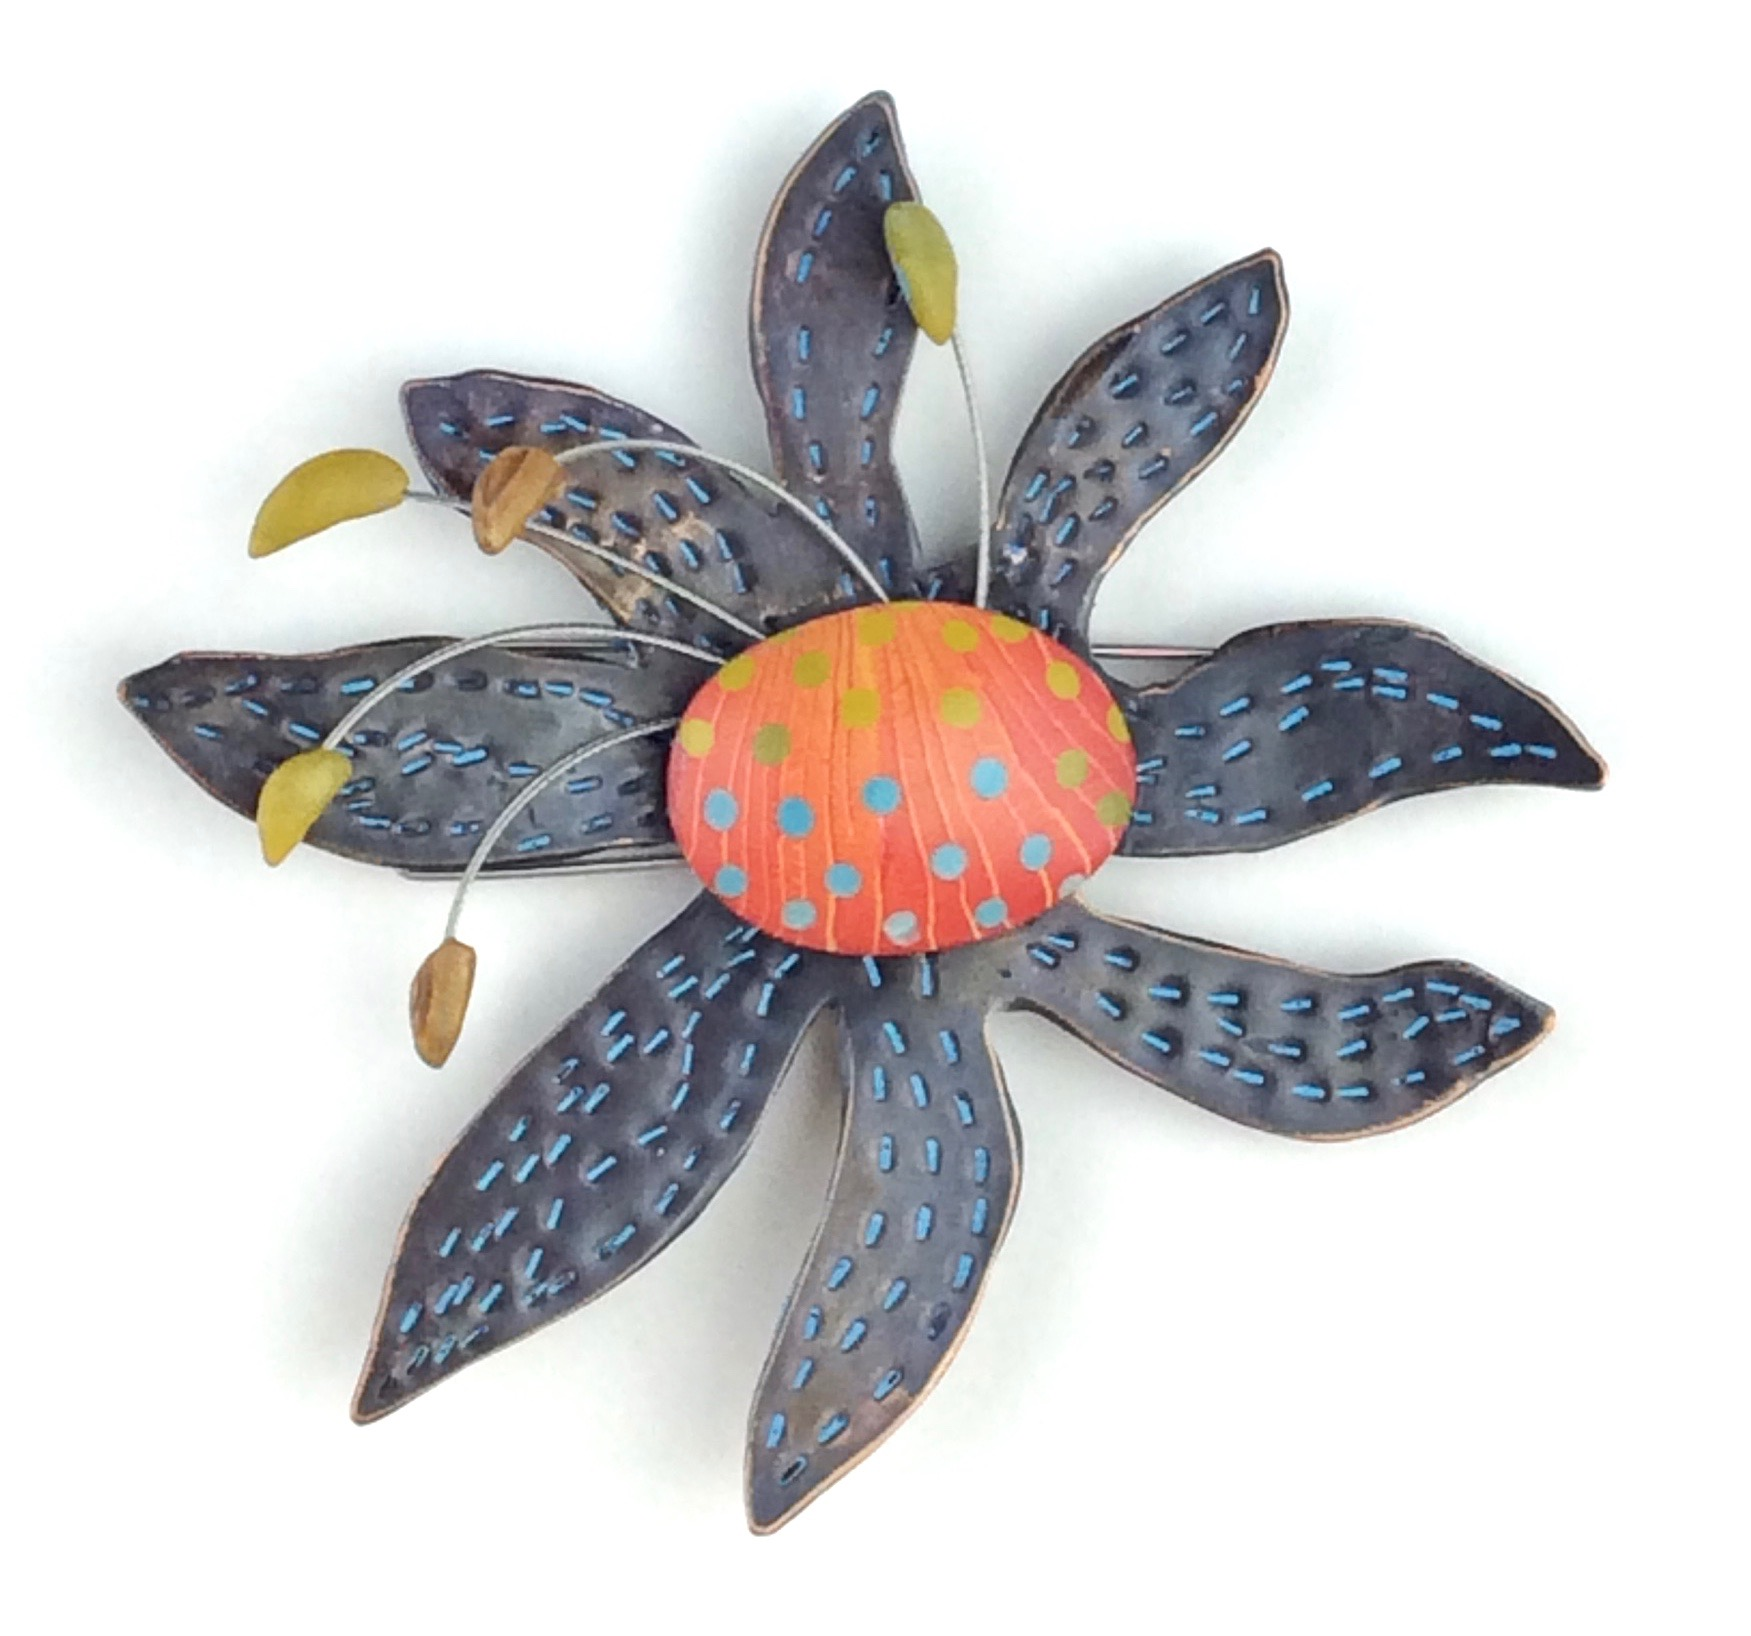 Petal Bop Pin  polymer clay millefiori marquetry, patinated bronze, sterling silver, stainless steel wire, acrylic paint  3.25 x 3.25 x .375 D